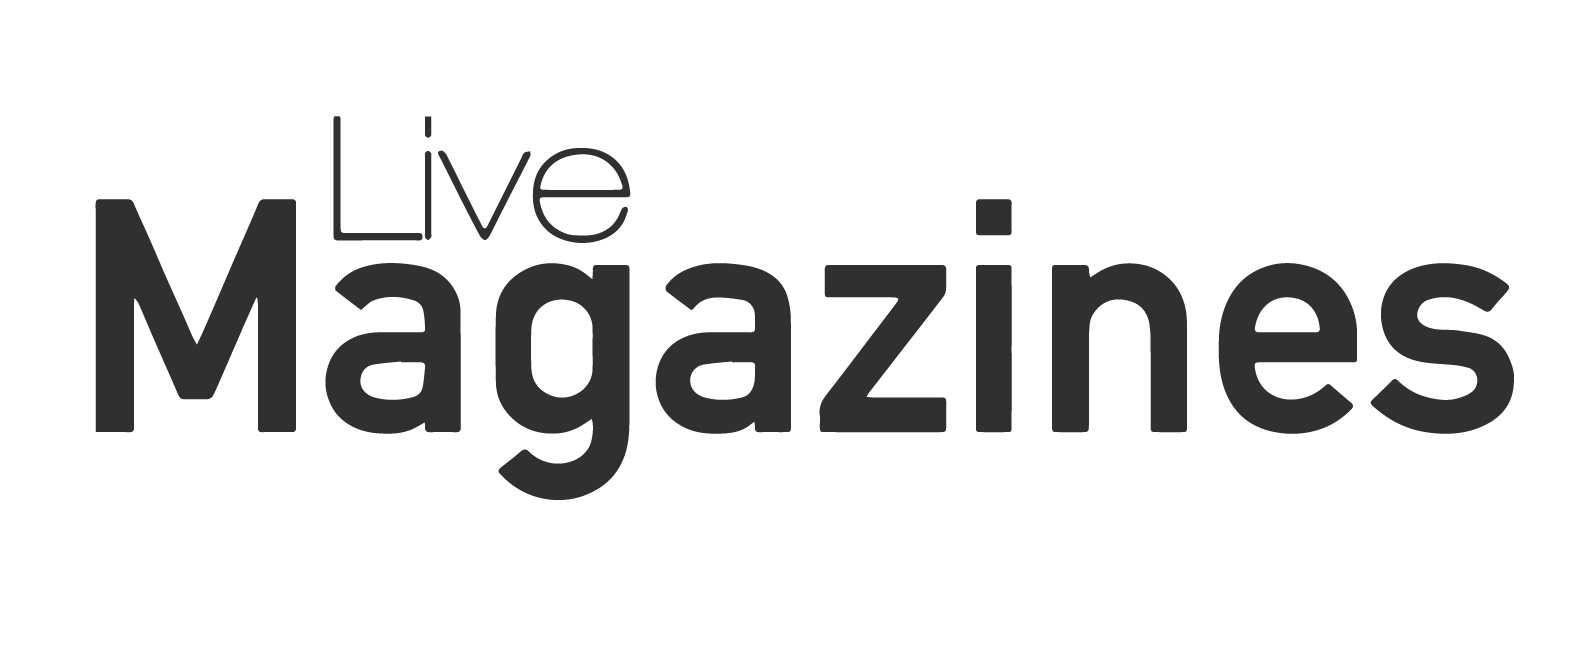 thinner image - live magazine black logo